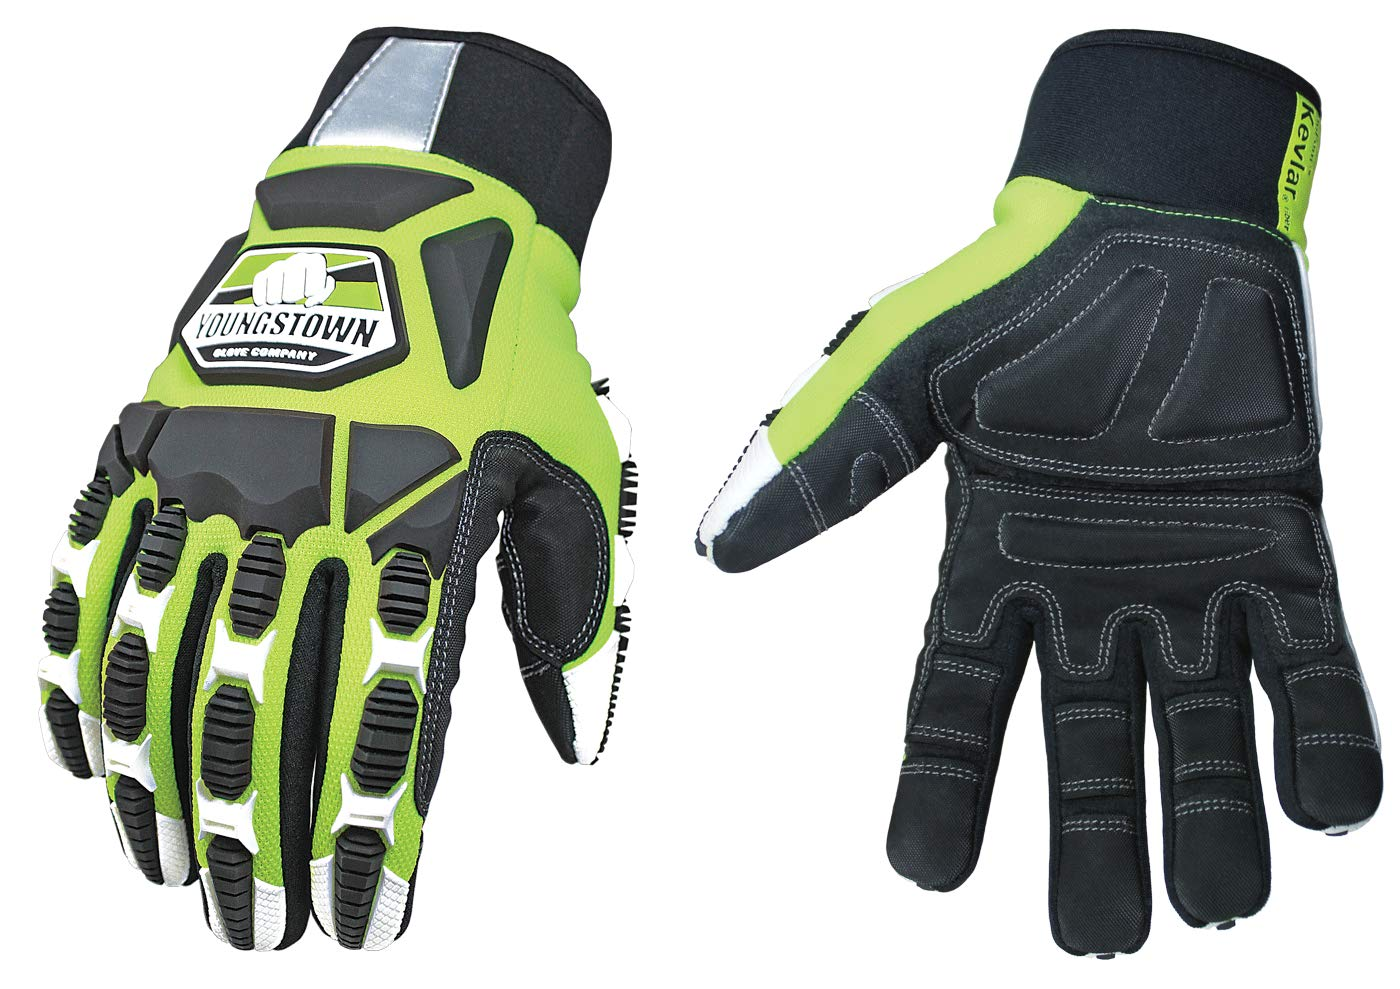 Tools Firefighter Bundle - 1 - Cut Resistant Extrication Gloves (Large) | 1 - Glove Strap (lime Green) | 1 - Drag Strap | 1 - Shove Knife | 1 - Firefighter Log Book (Track training hours, Run activit by Generic (Image #3)